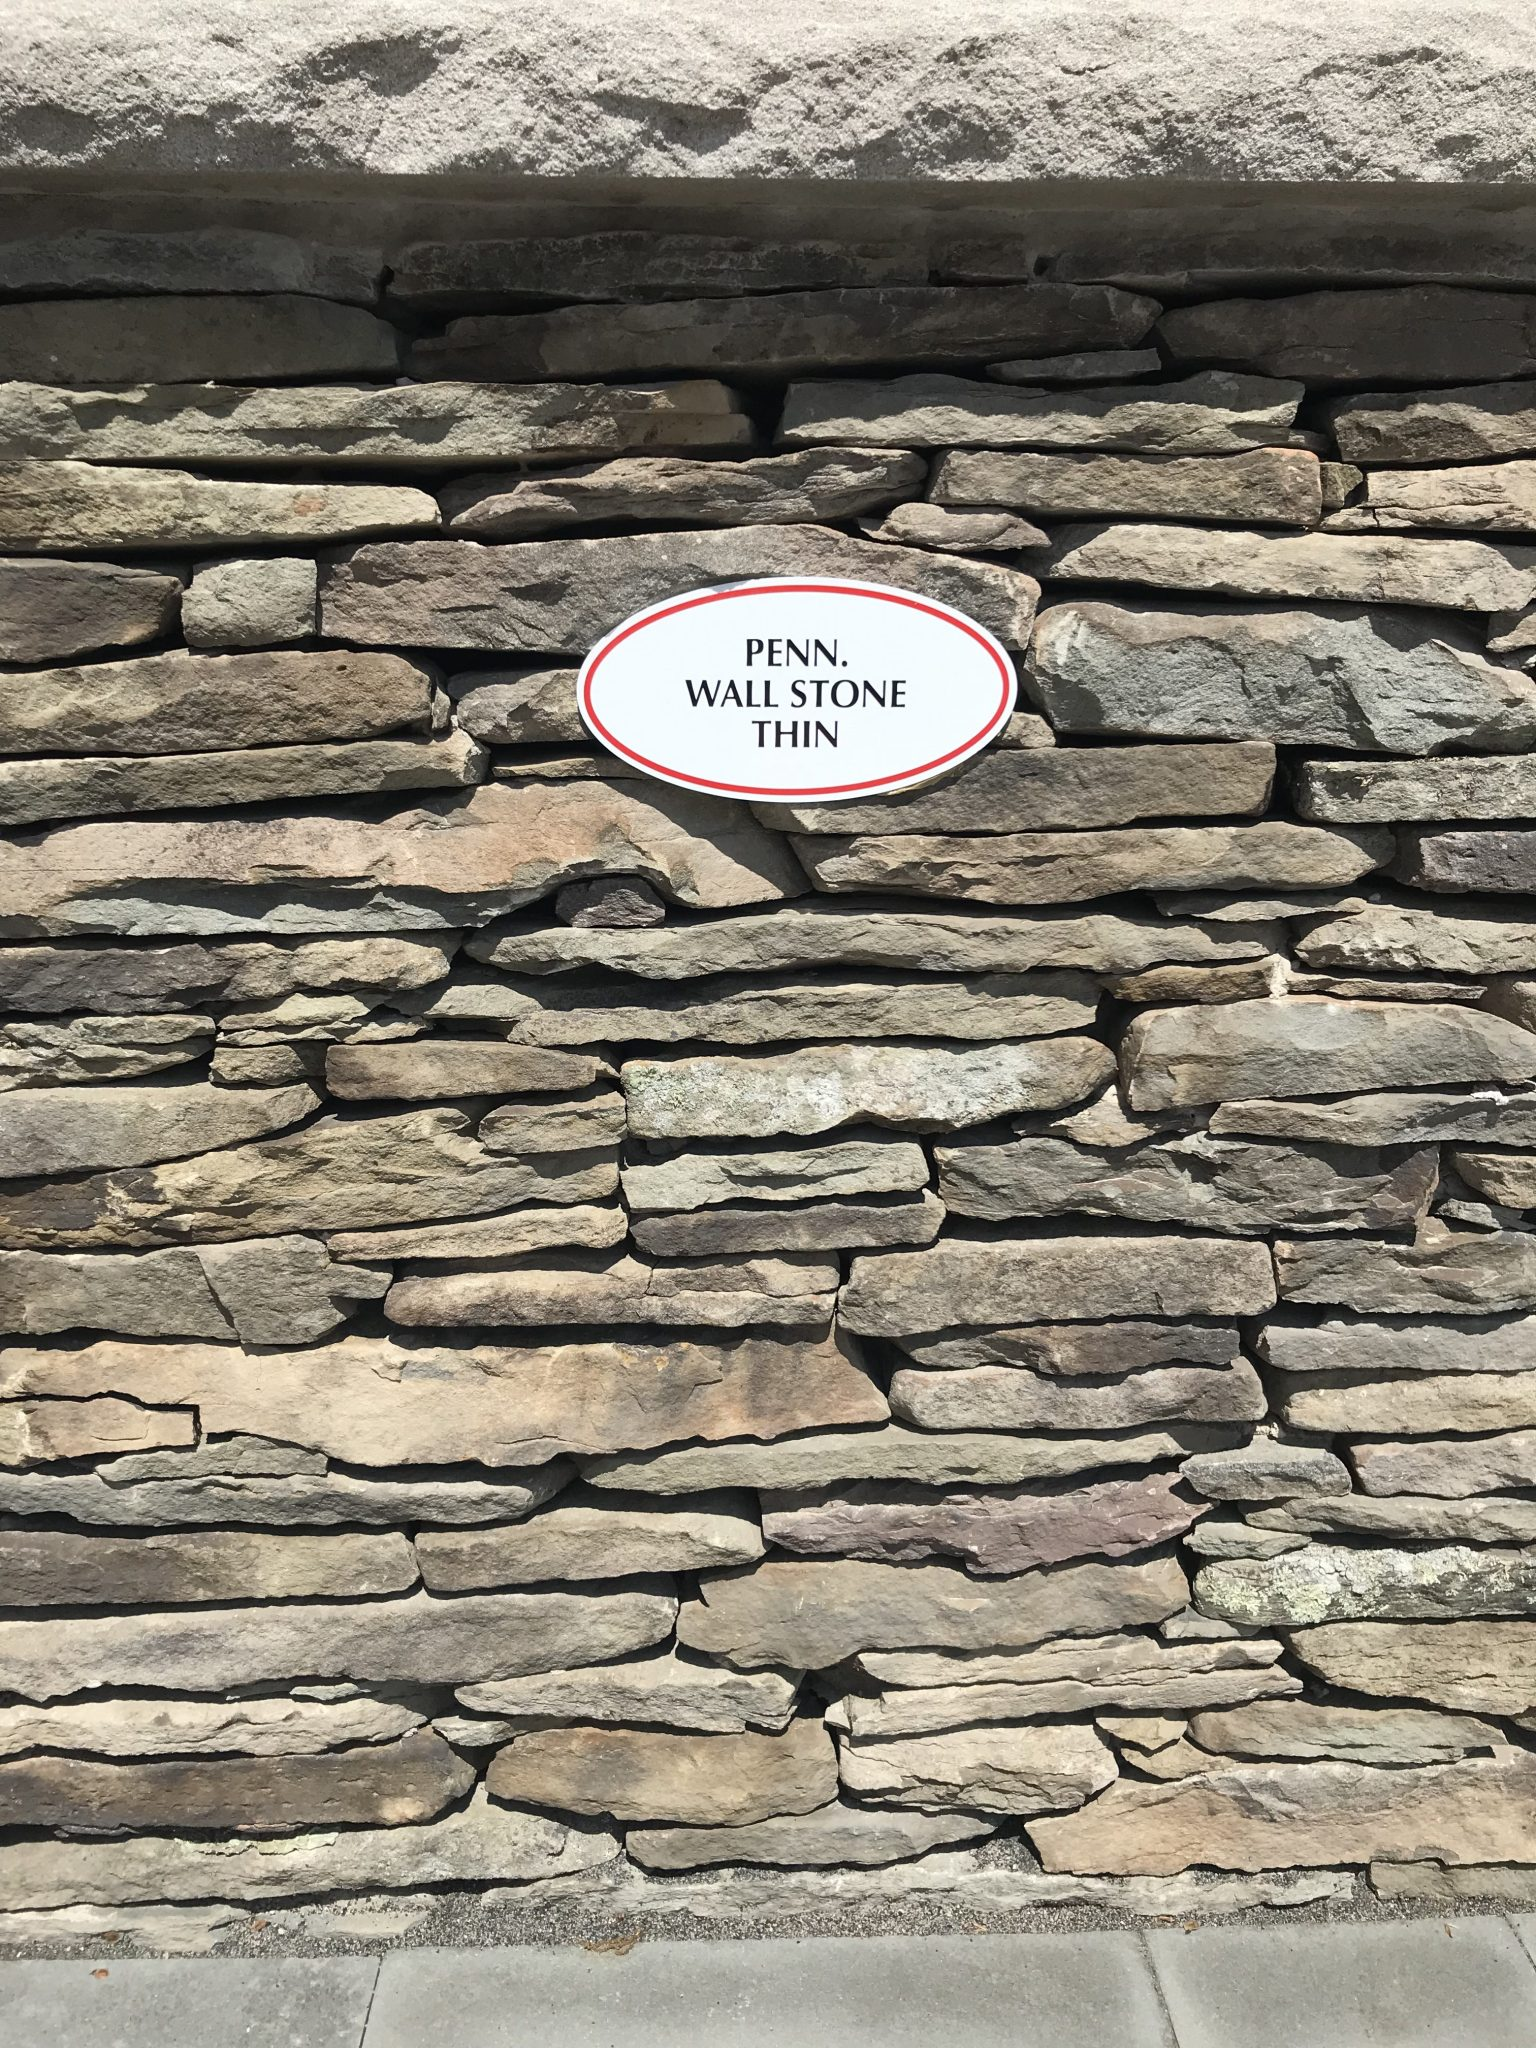 penn wall stone thin